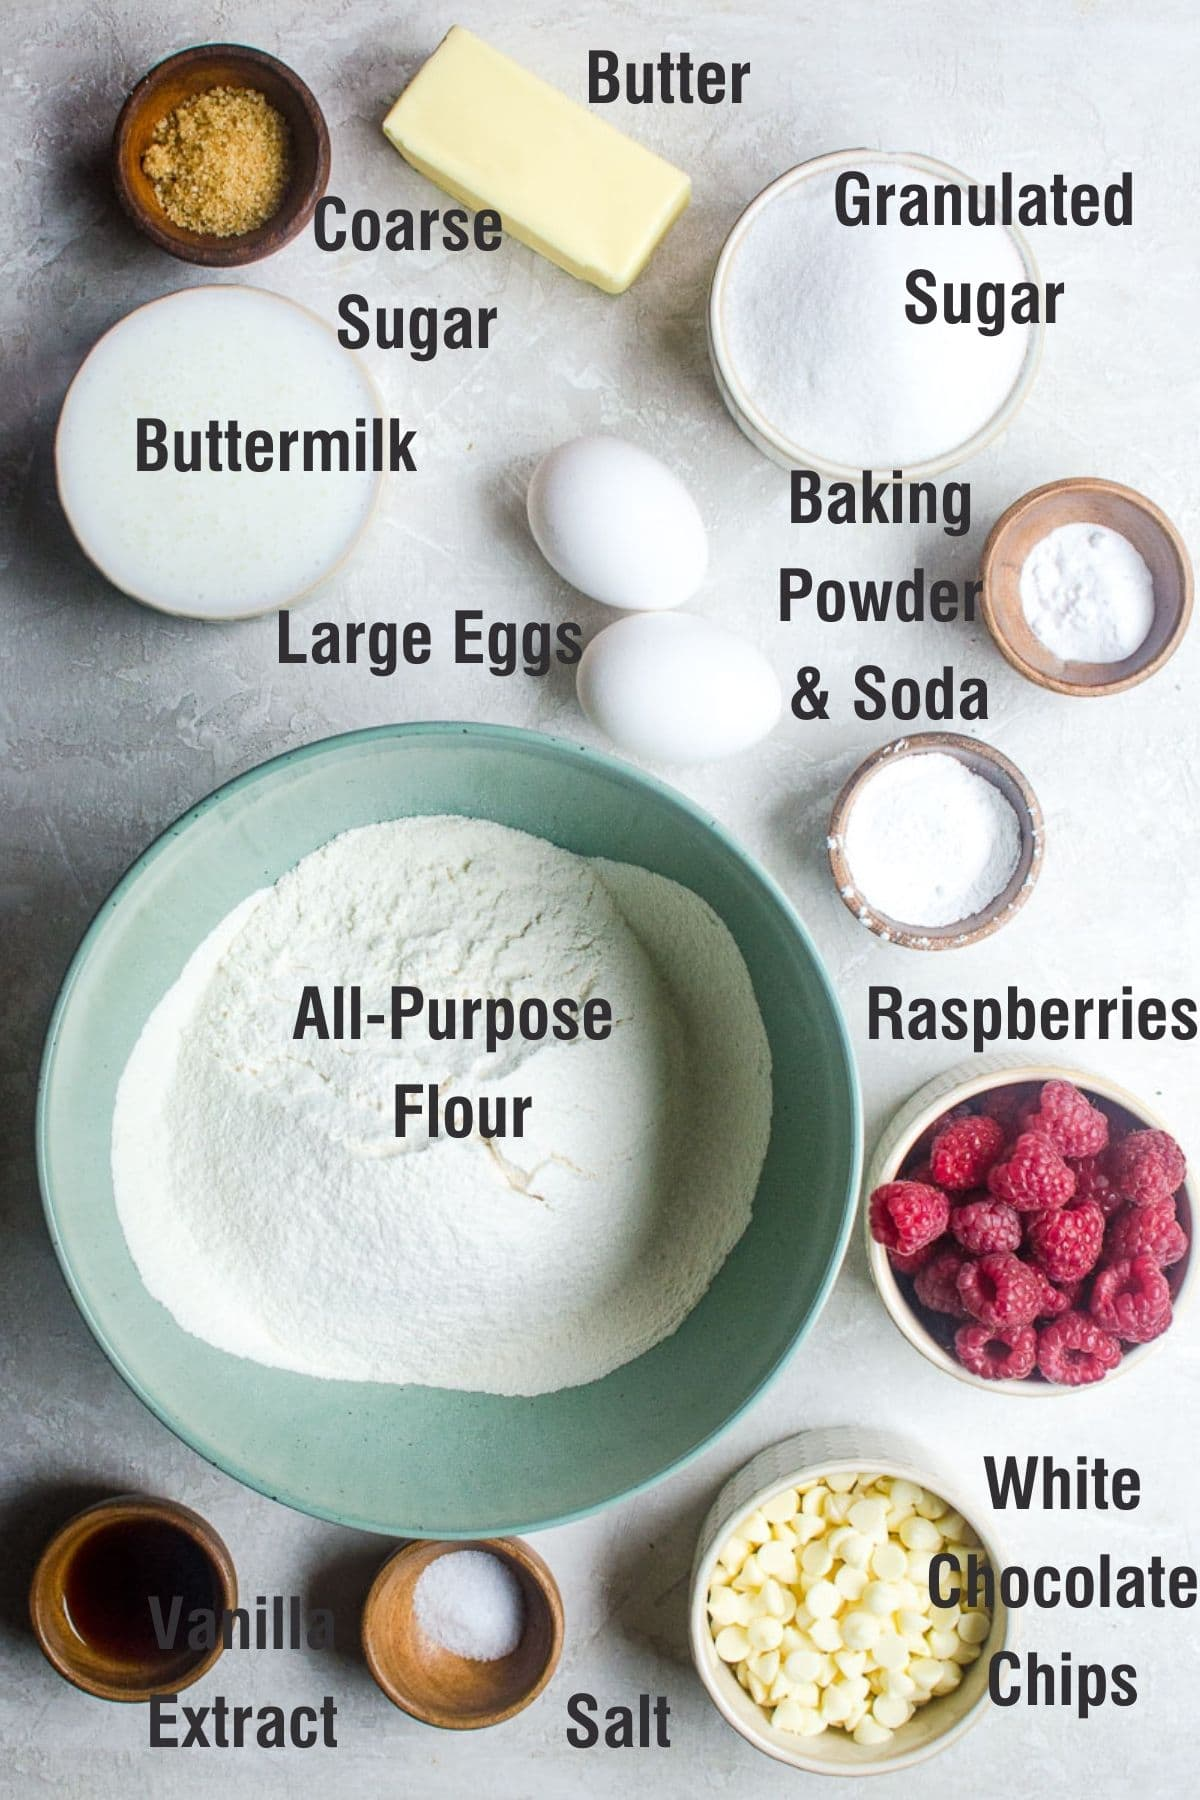 Labeled ingredients for making raspberry white chocolate chip muffins.